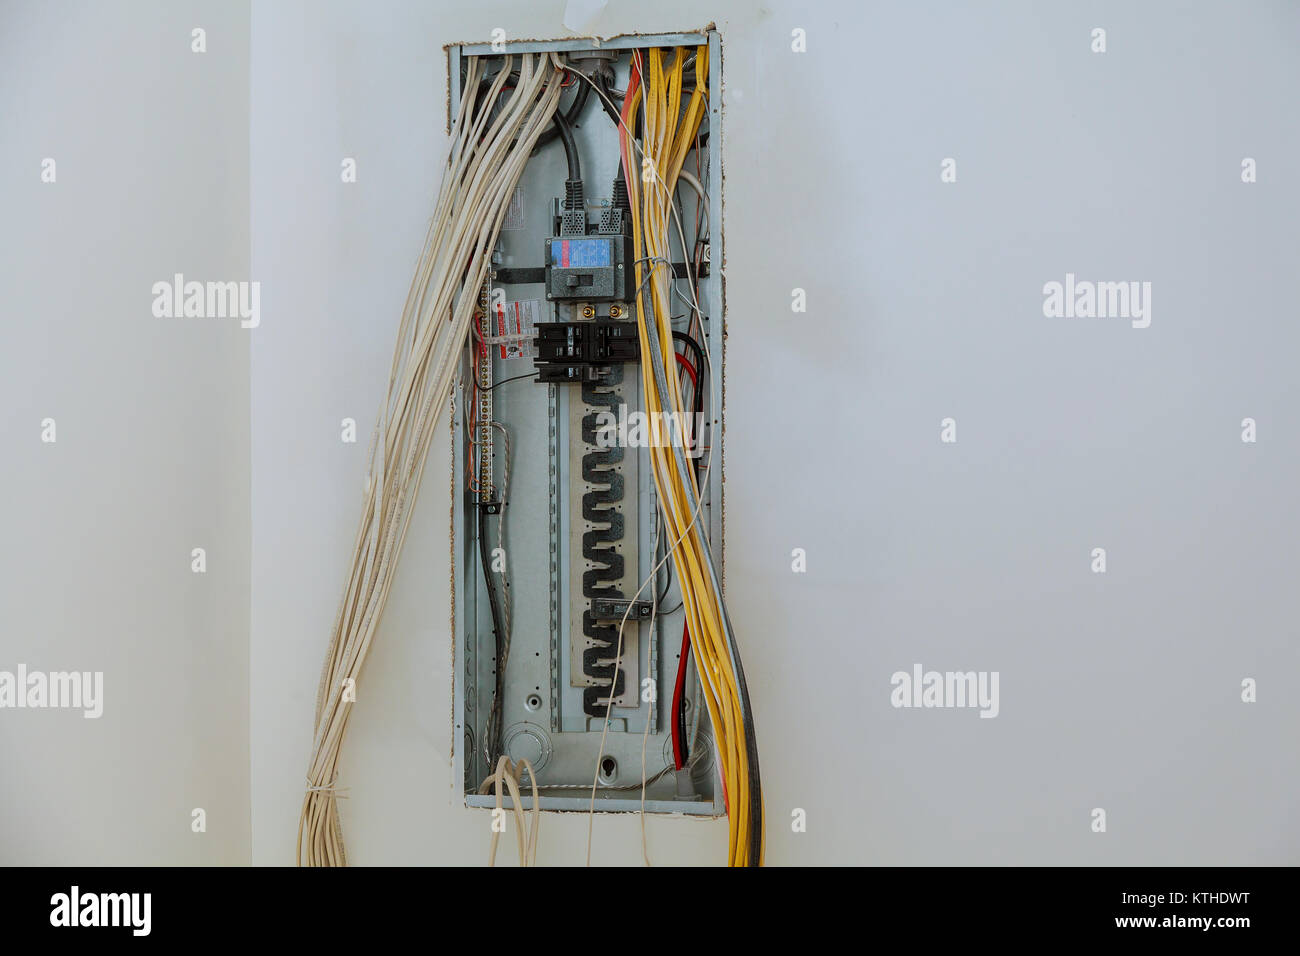 Switchboard Fuse Box Energy Power Stockfotos & Switchboard Fuse Box ...